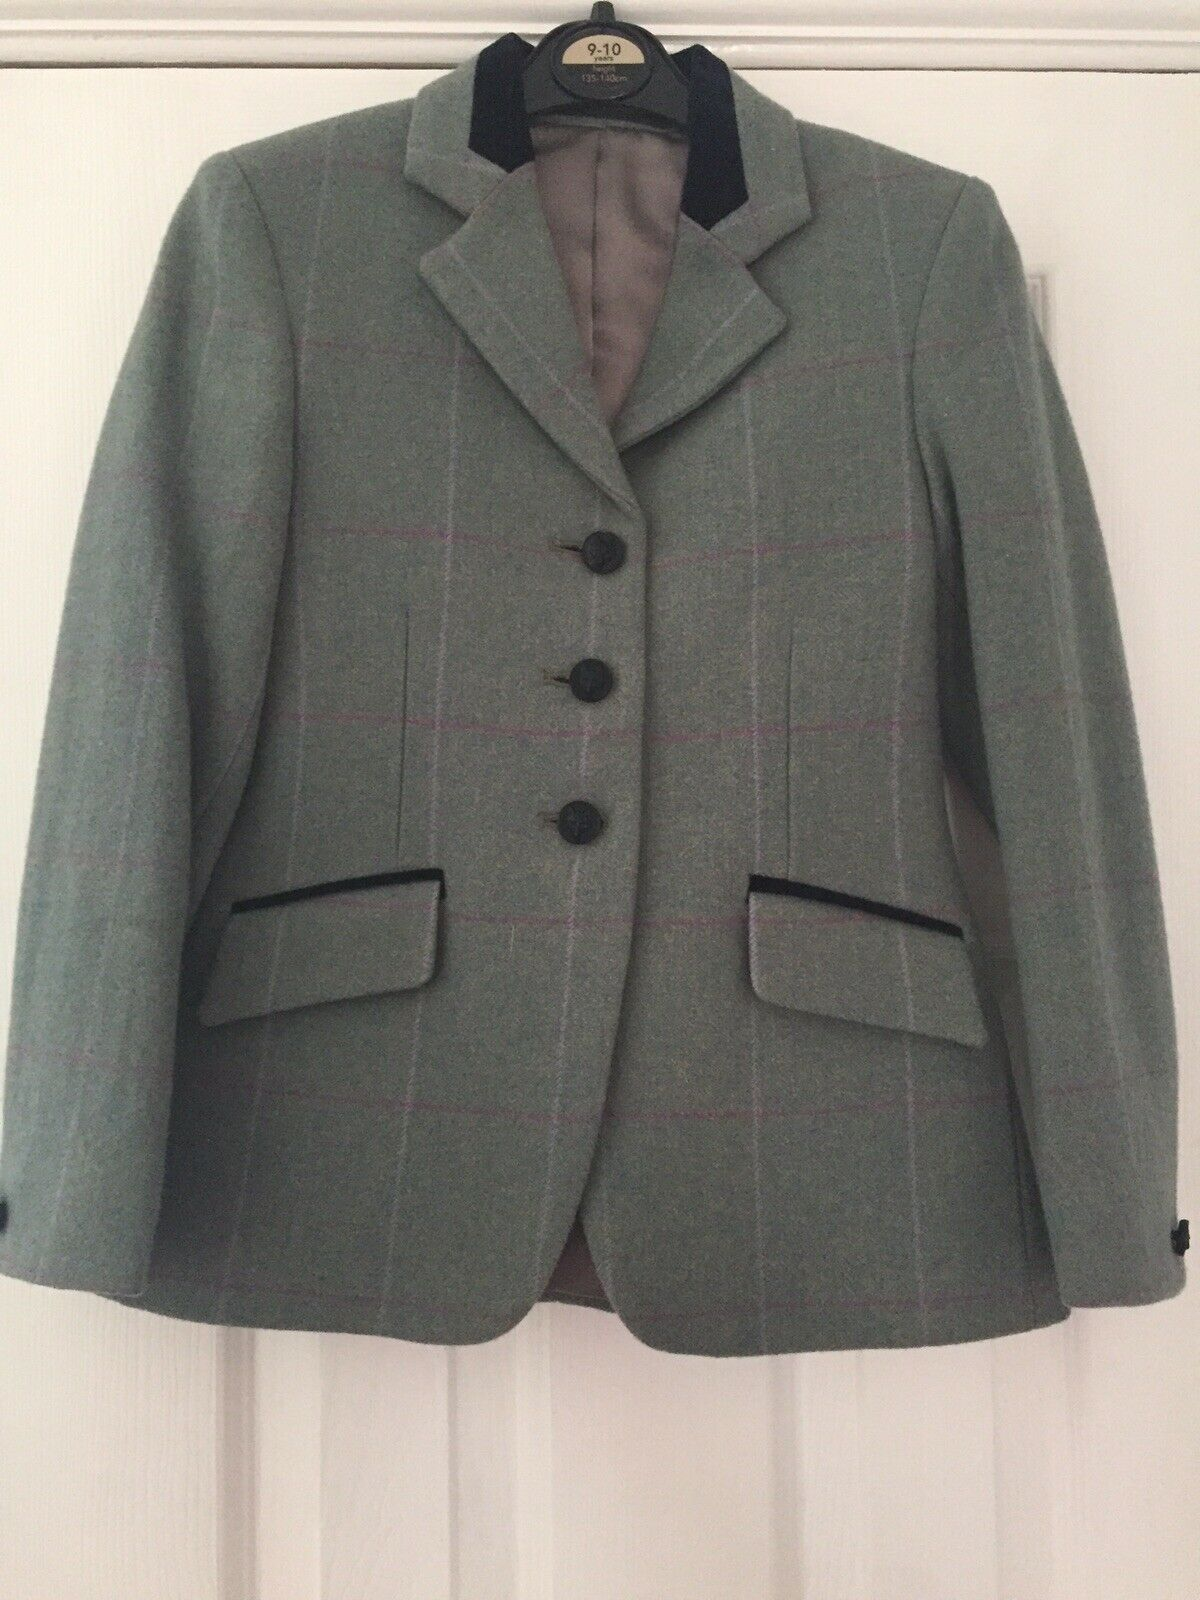 Mears Pytchley SH16 Tweed